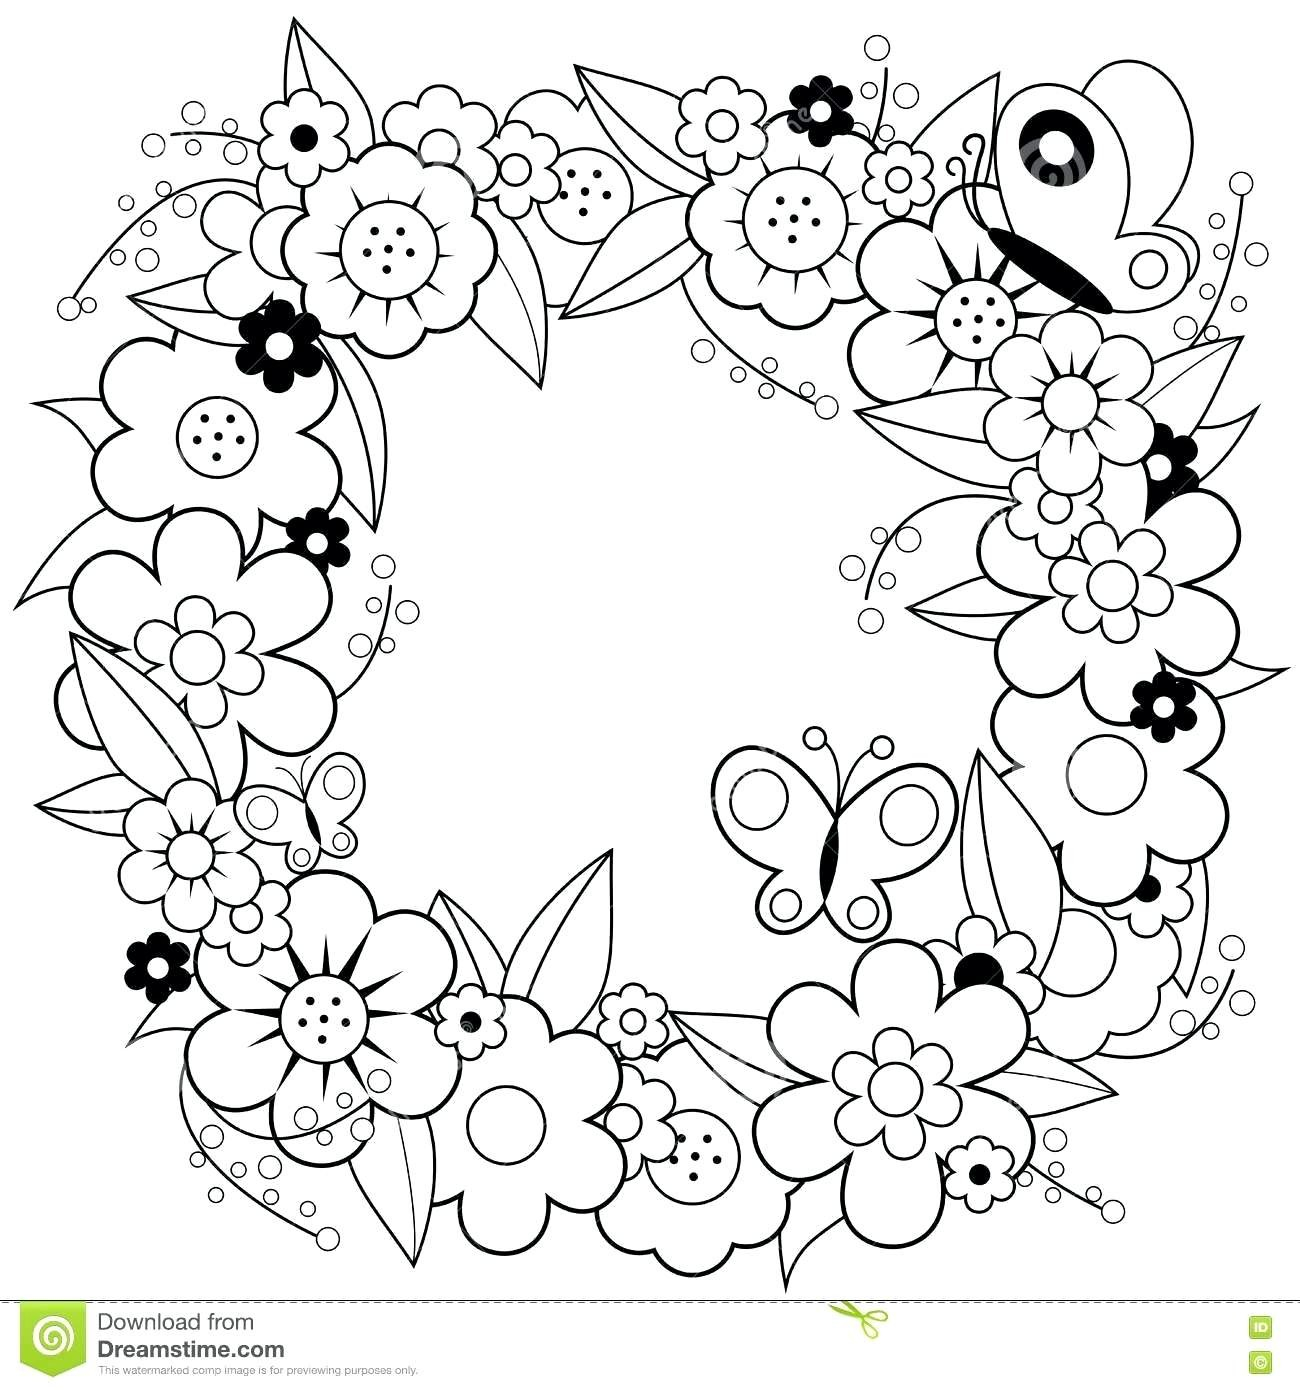 Christmas Wreath Coloring Pages Christmas Wreath Coloring Pages Lezincnyc